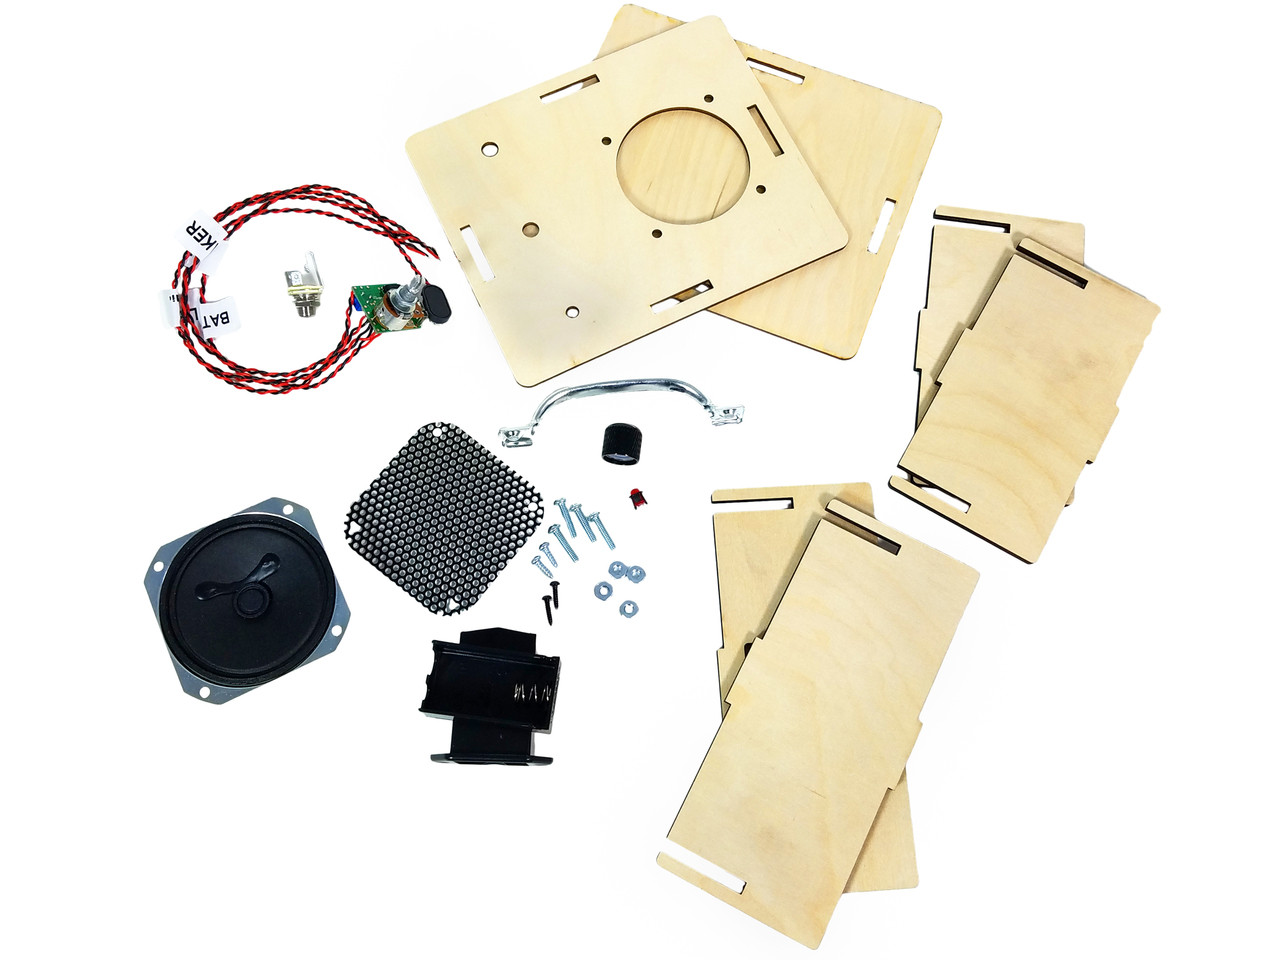 DIY 2 5 Watt Amplifier Kit - Laser-cut enclosure offers endless  customization possibilities